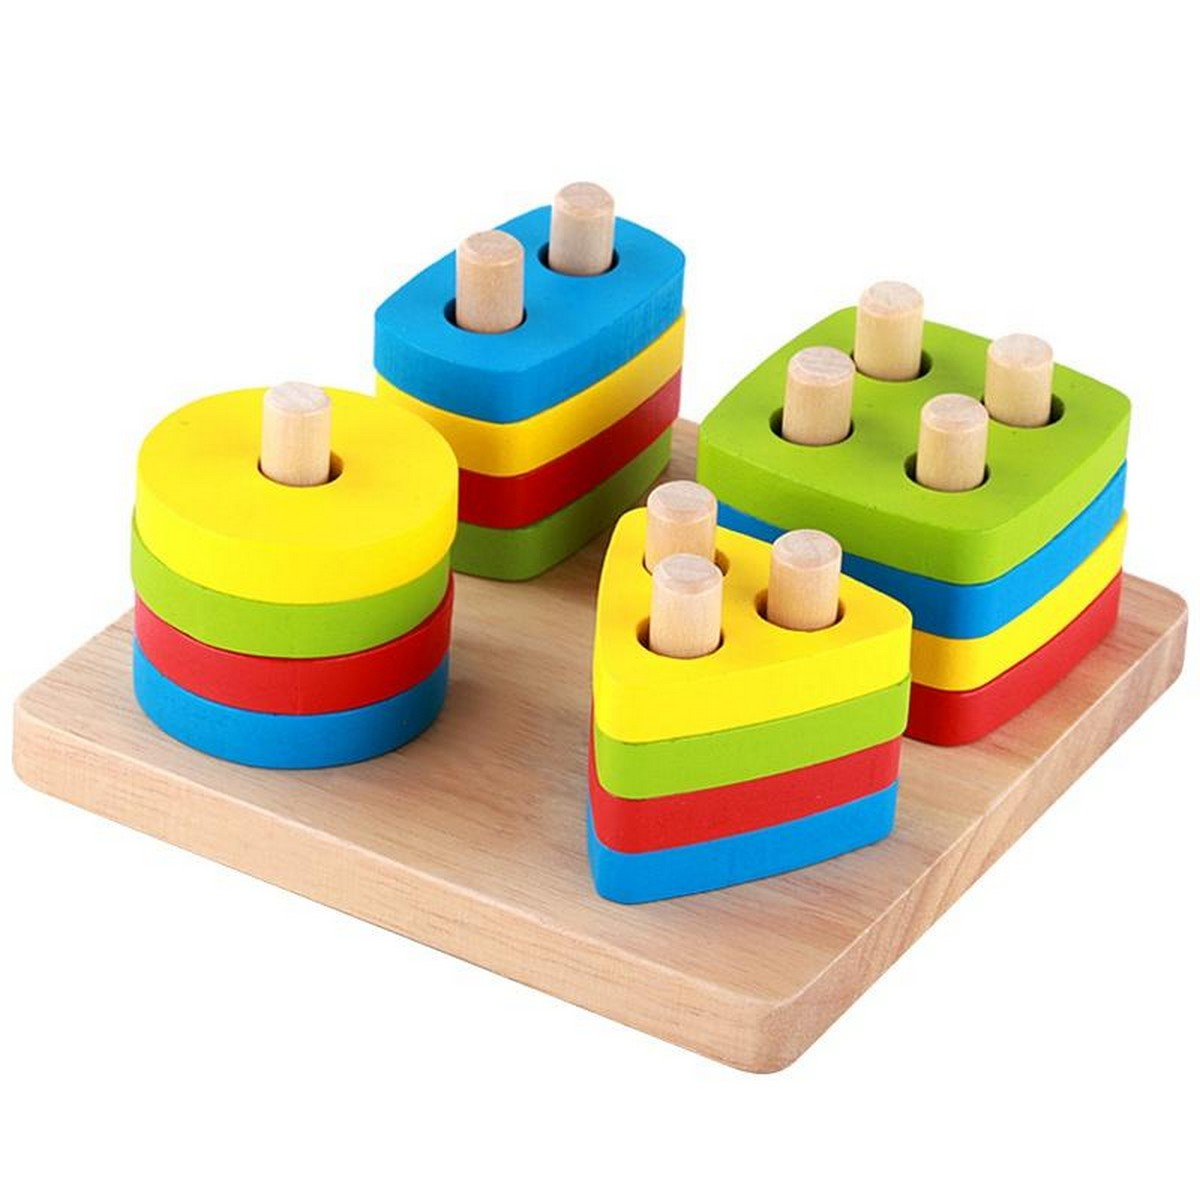 Geometric Intelligence Board Wooden Puzzles Teaching Geometric Shape Cognitive Matching Toys colorful For Kids